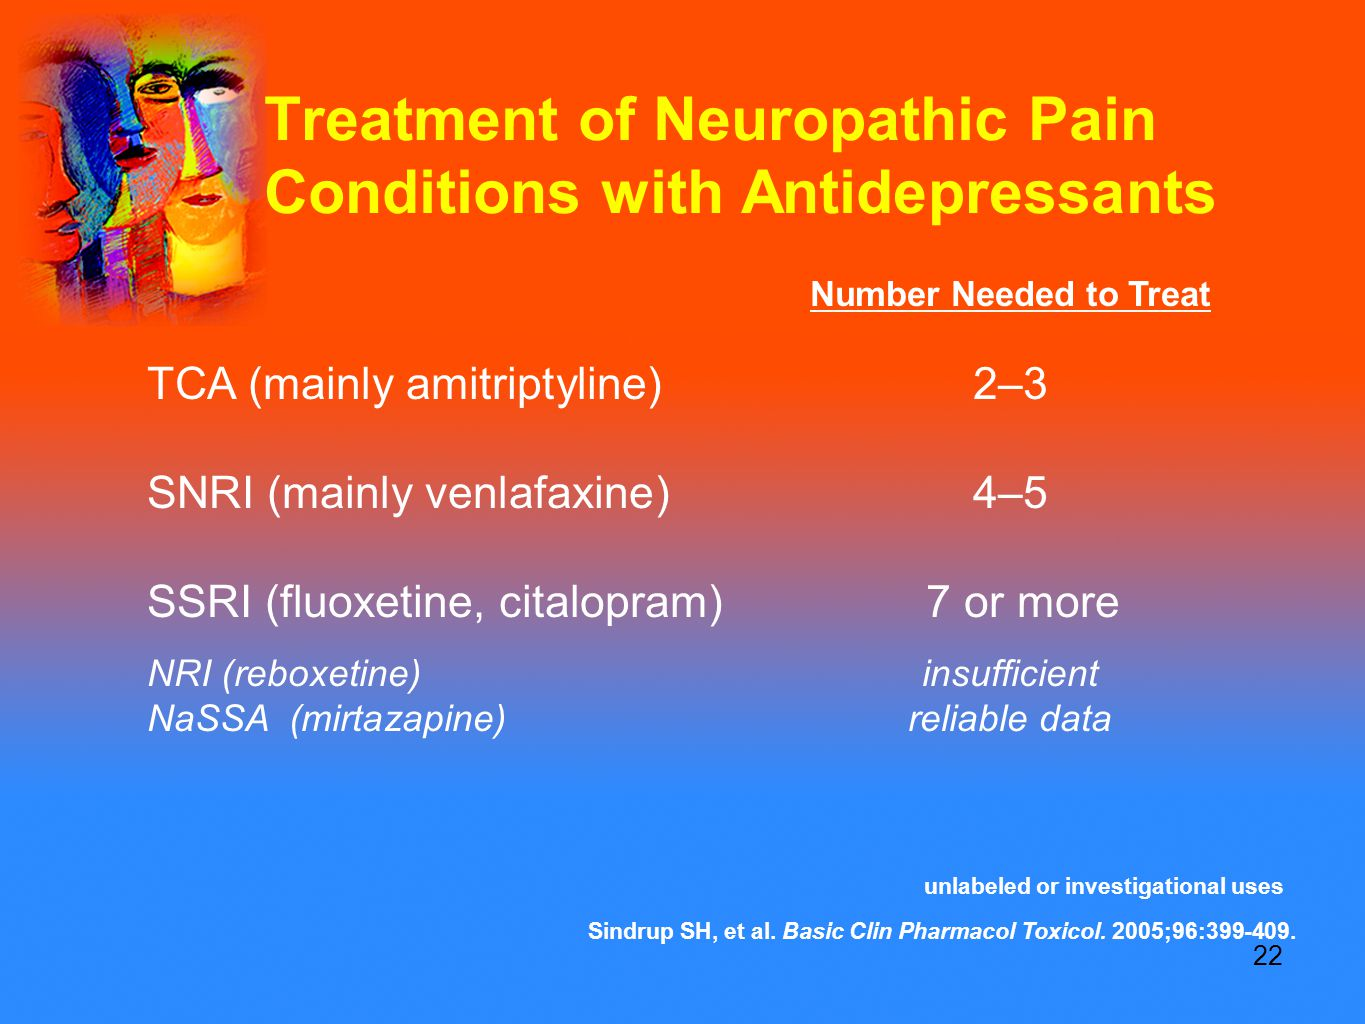 22 Treatment of Neuropathic Pain Conditions with Antidepressants Number Needed to Treat TCA (mainly amitriptyline)2–3 SNRI (mainly venlafaxine)4–5 SSRI (fluoxetine, citalopram) 7 or more NRI (reboxetine)insufficient NaSSA (mirtazapine) reliable data Sindrup SH, et al.